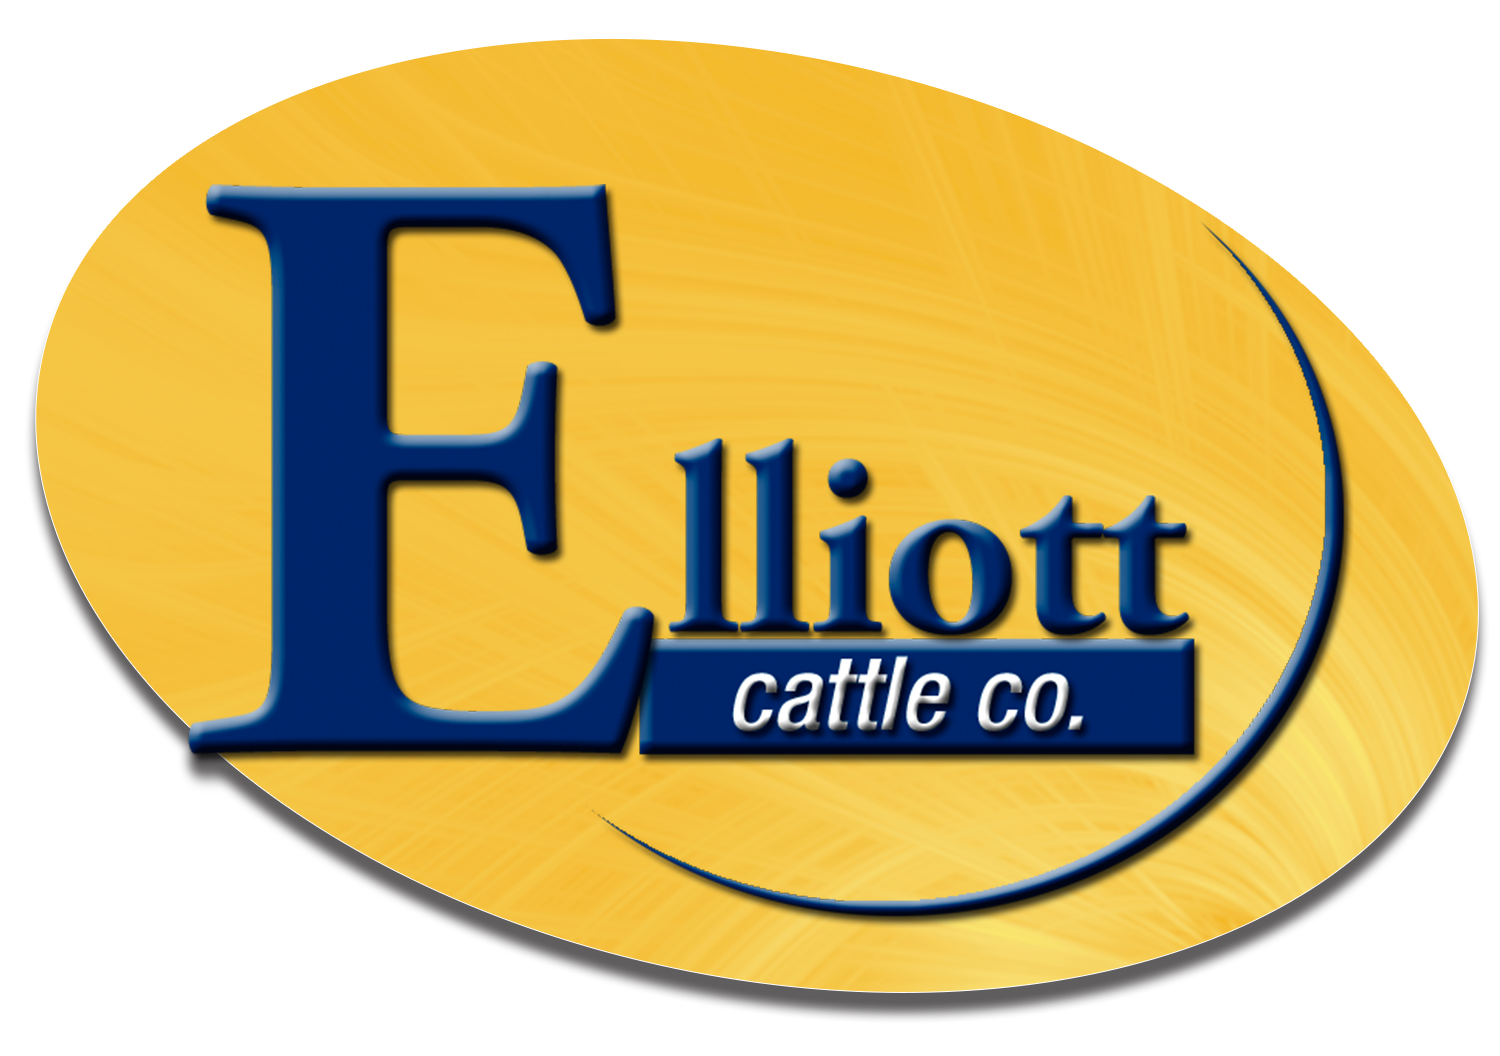 Elliott Cattle Co.